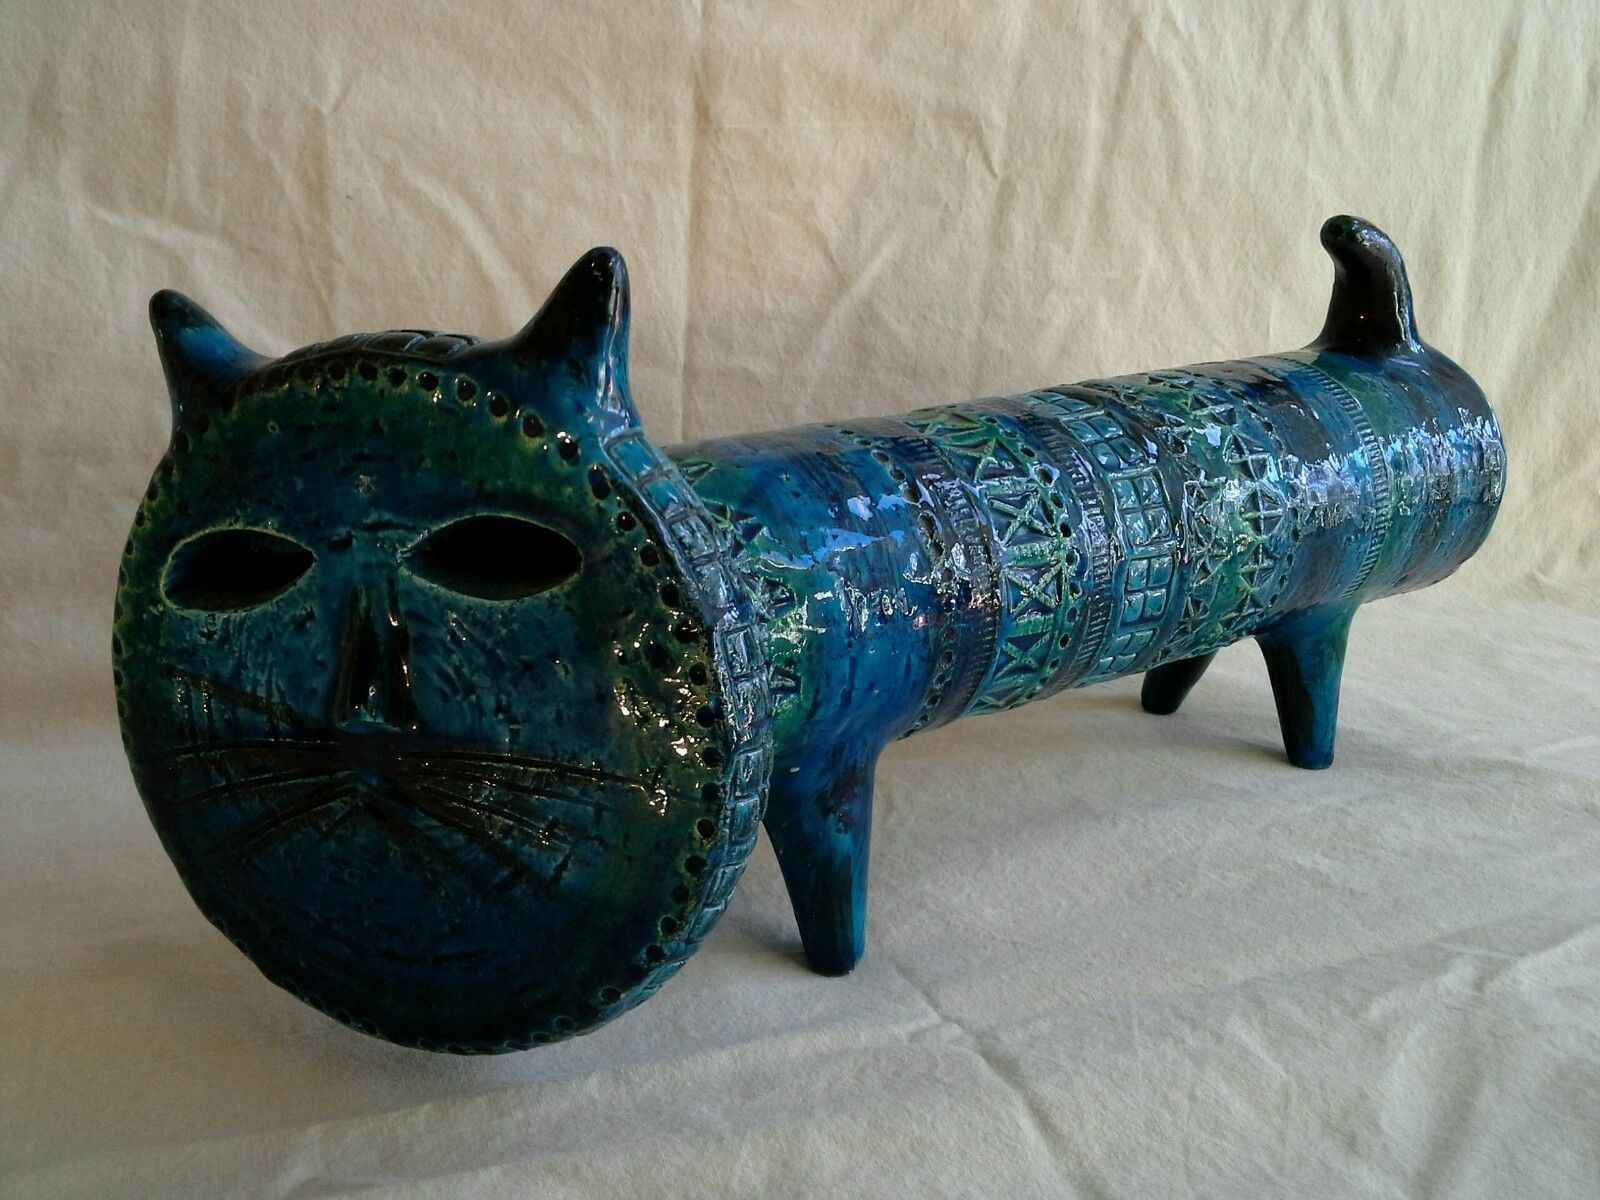 BITOSSI of ITALY ALDO LONDI CAT - RIMINI BLU - SIGNED - EARLY 1960'S his Cat's dimensions are: Overall Length = 40cm Cat's Face = 14cm Cat's Body = 8.5cm Overall Height = 17cm Weight = 2.02kg (Unpacked) = 3.5kg (Packed)